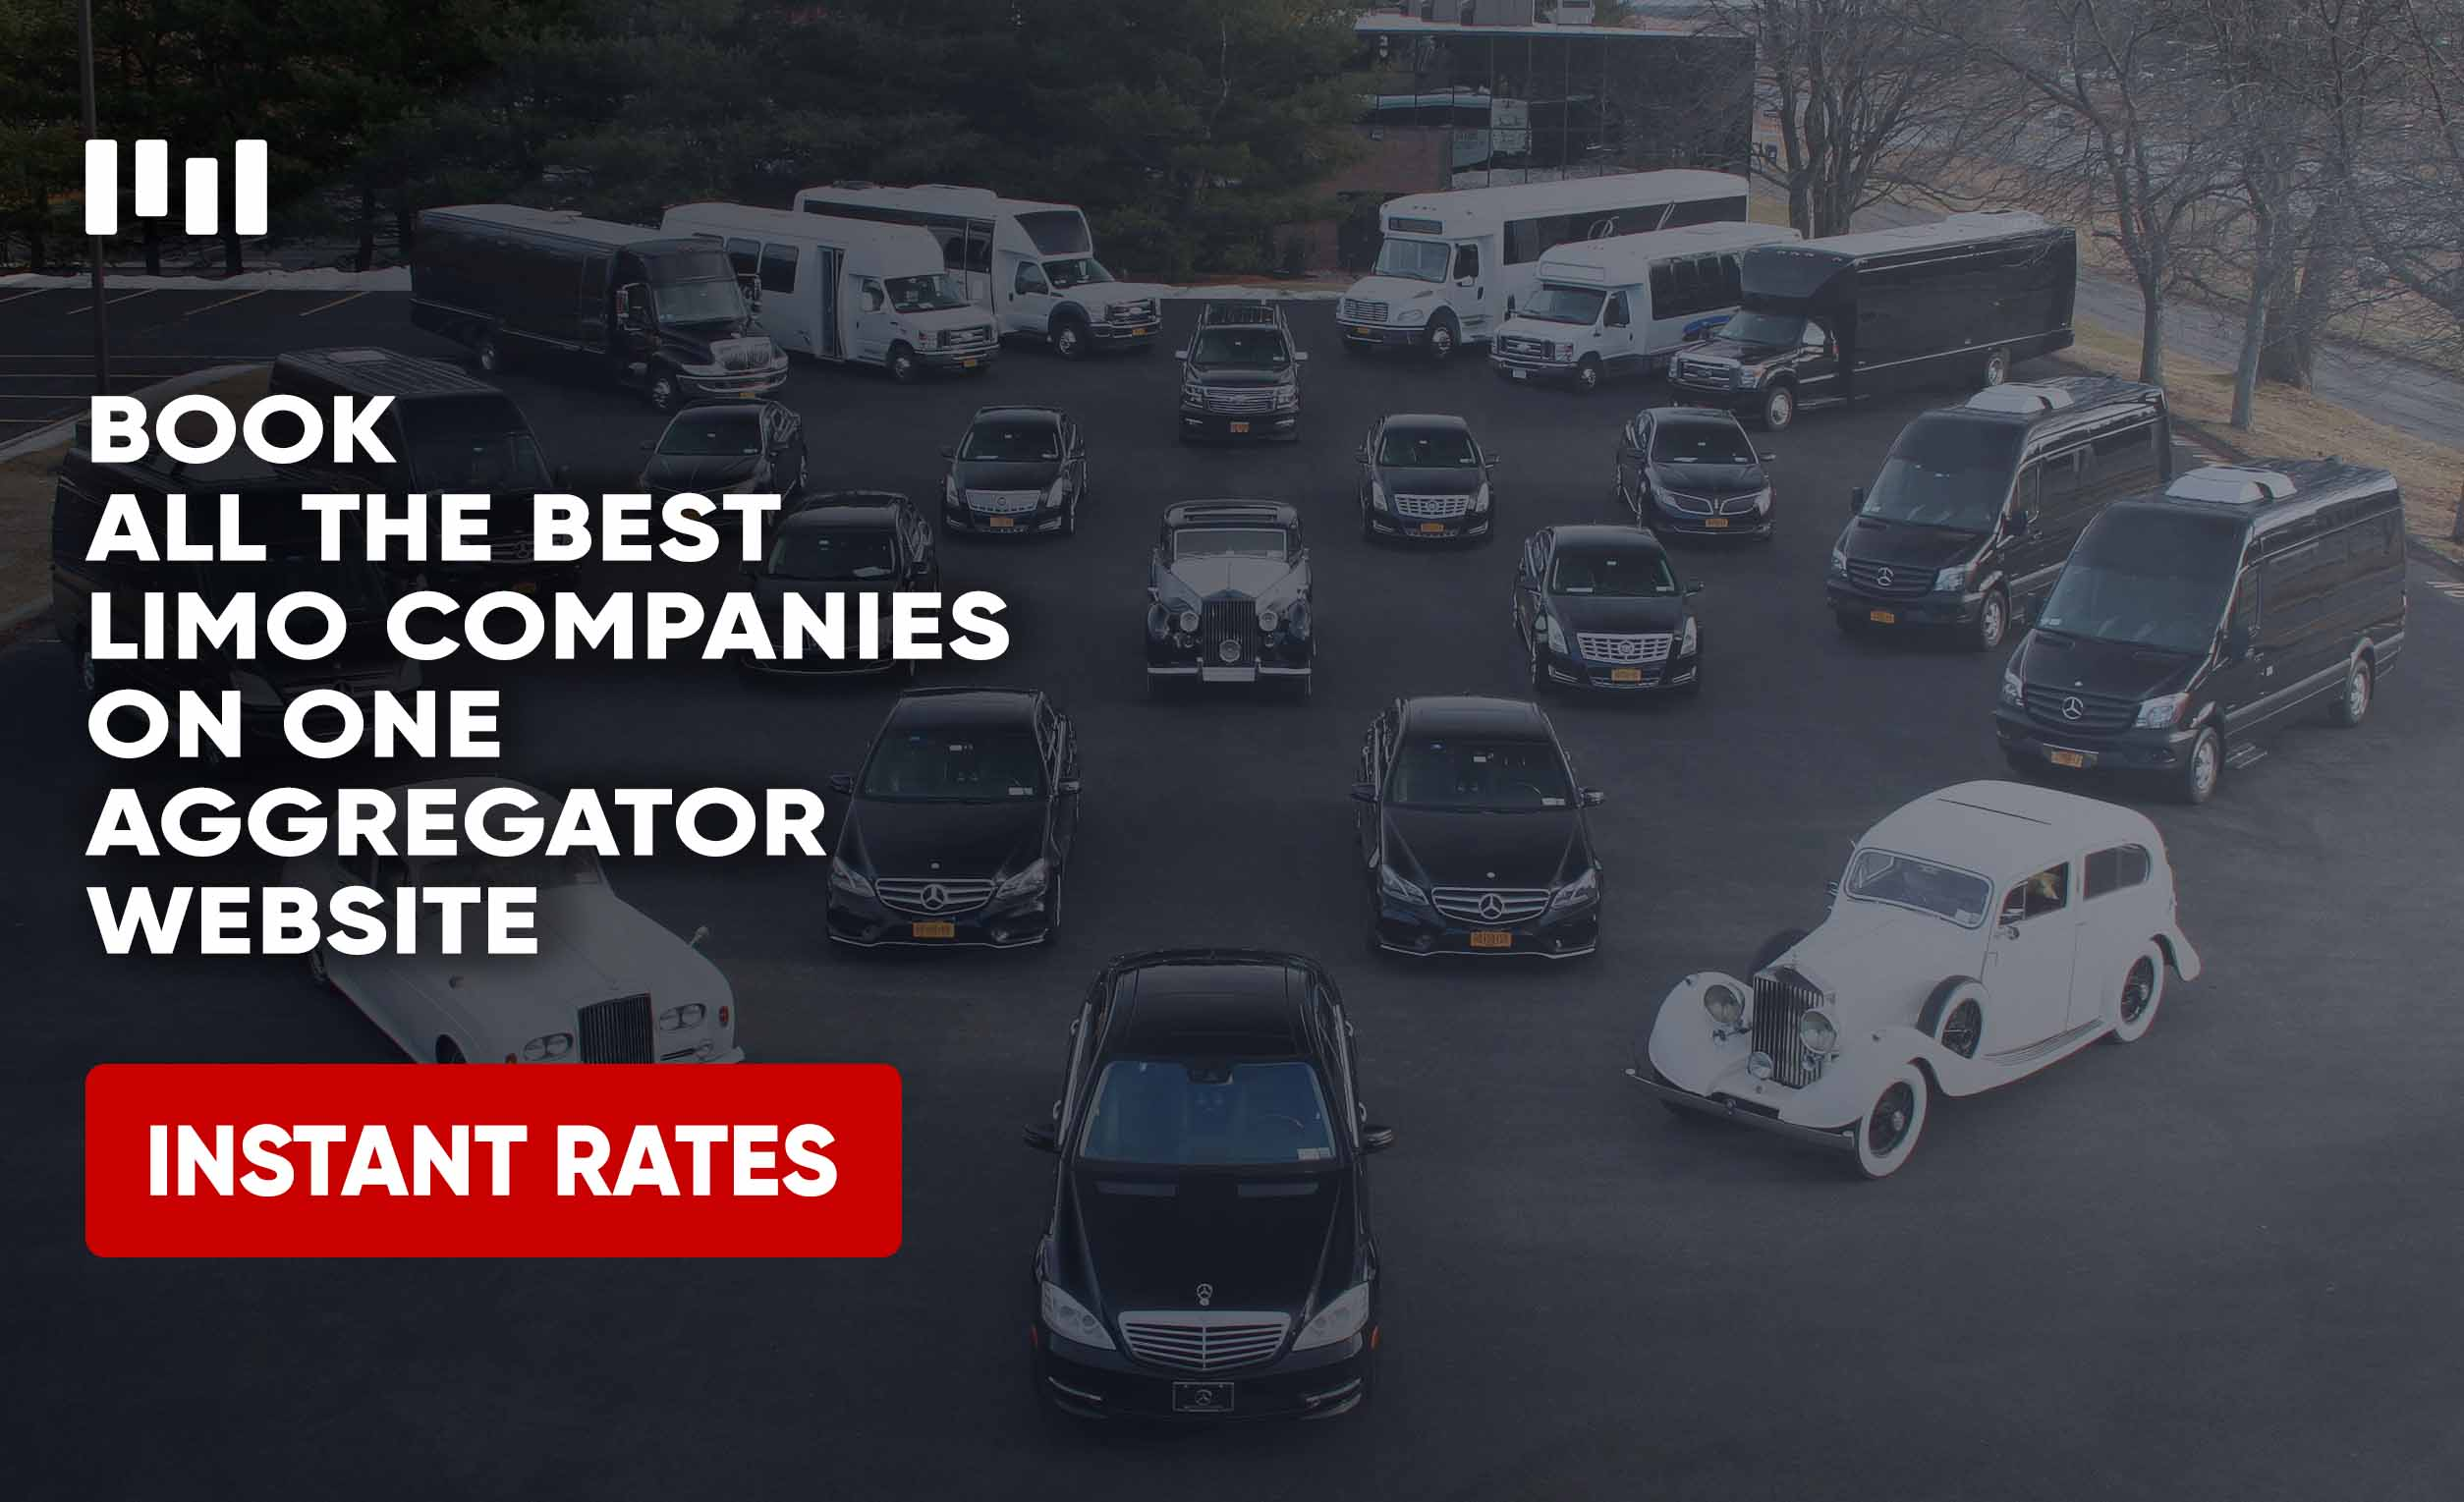 Busmanity.com — meet a fully automated bus & limo booking service with a 0% fee. Forget about emails or calls and get instant rates from 47+ operators in New York, New Jersey, and Long Island on one aggregator website with live photos and multi-search.